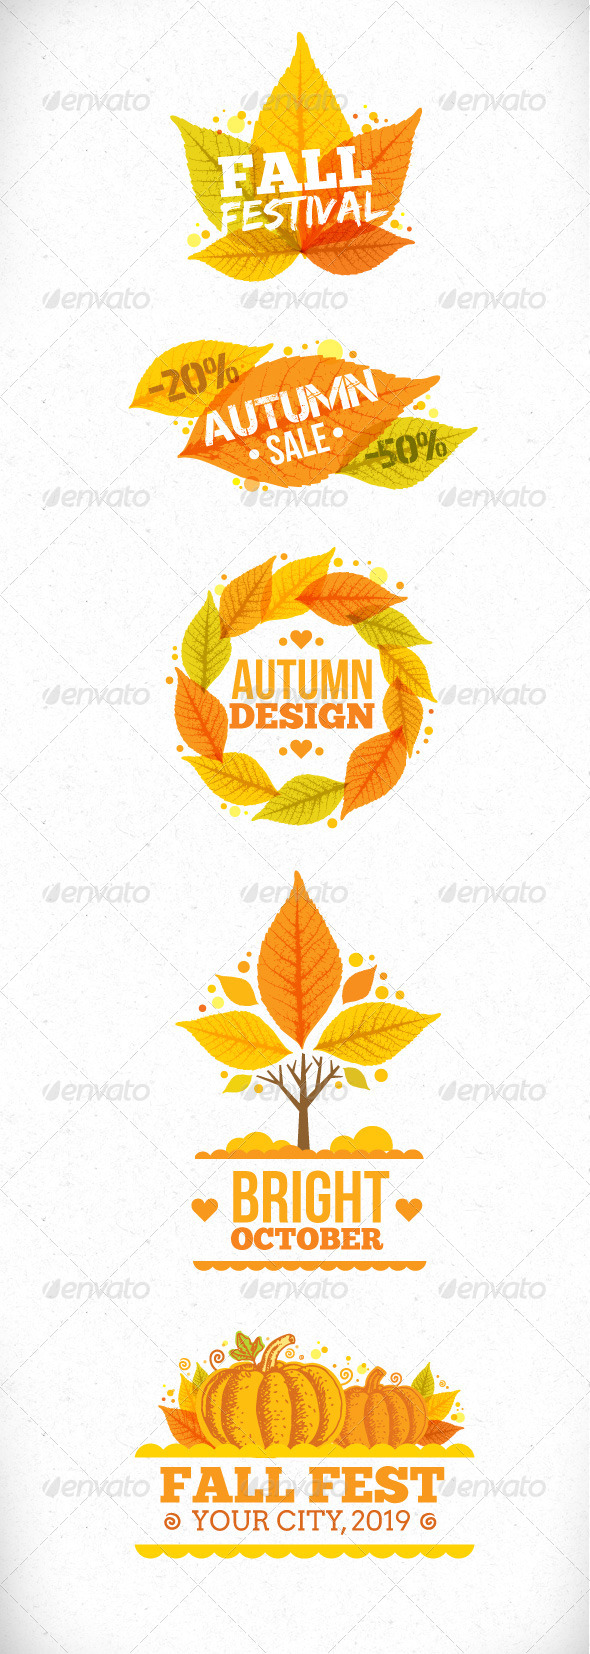 Autumn Leaves Vector Art Design Elements - Seasons Nature